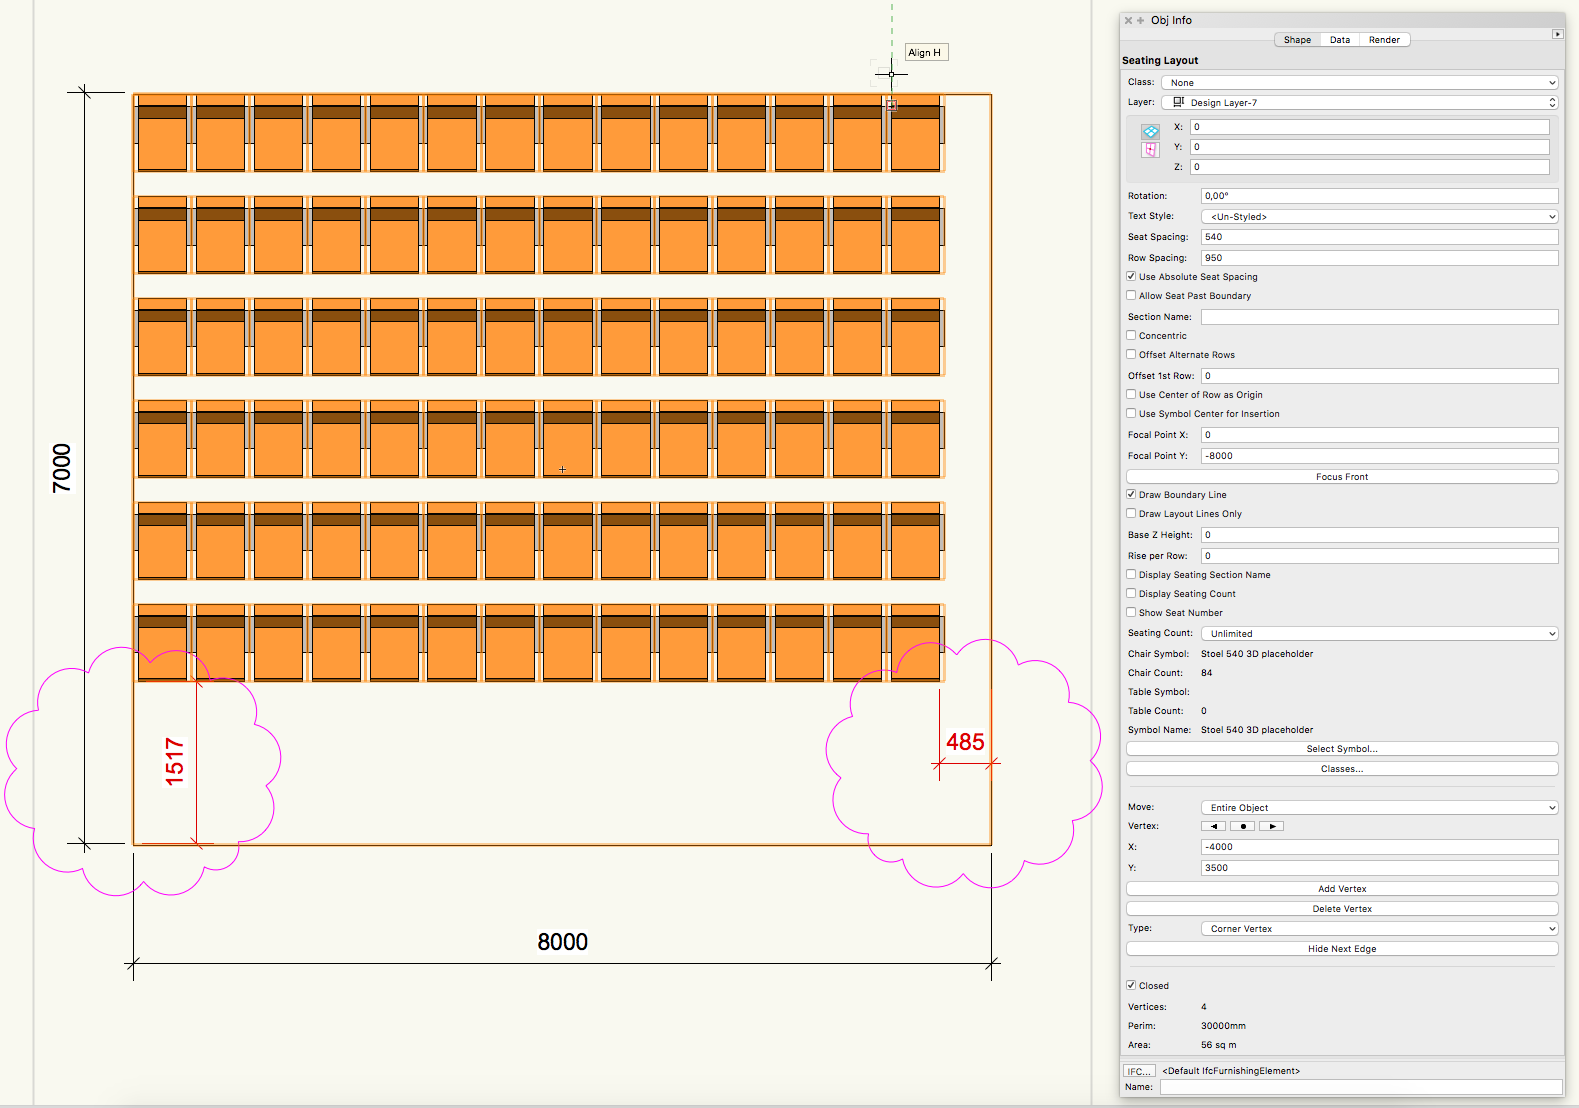 VW 2017 seating layout CSS straight rows.png